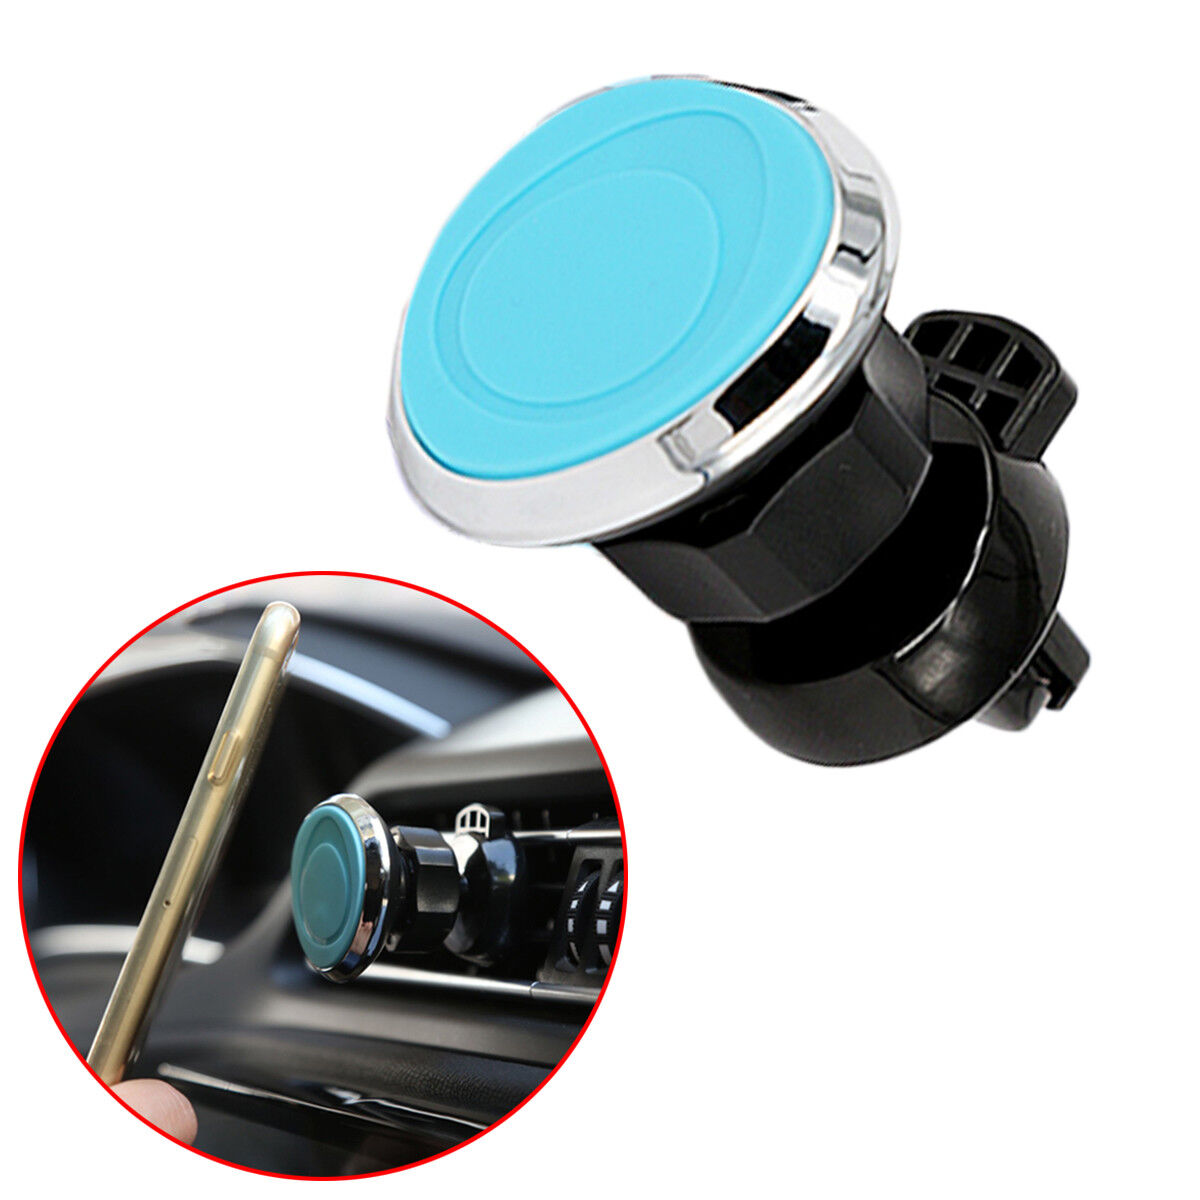 Magnetic Cell Phone Mount Holder Truck Air Vent Stand GPS Bracket Accessories